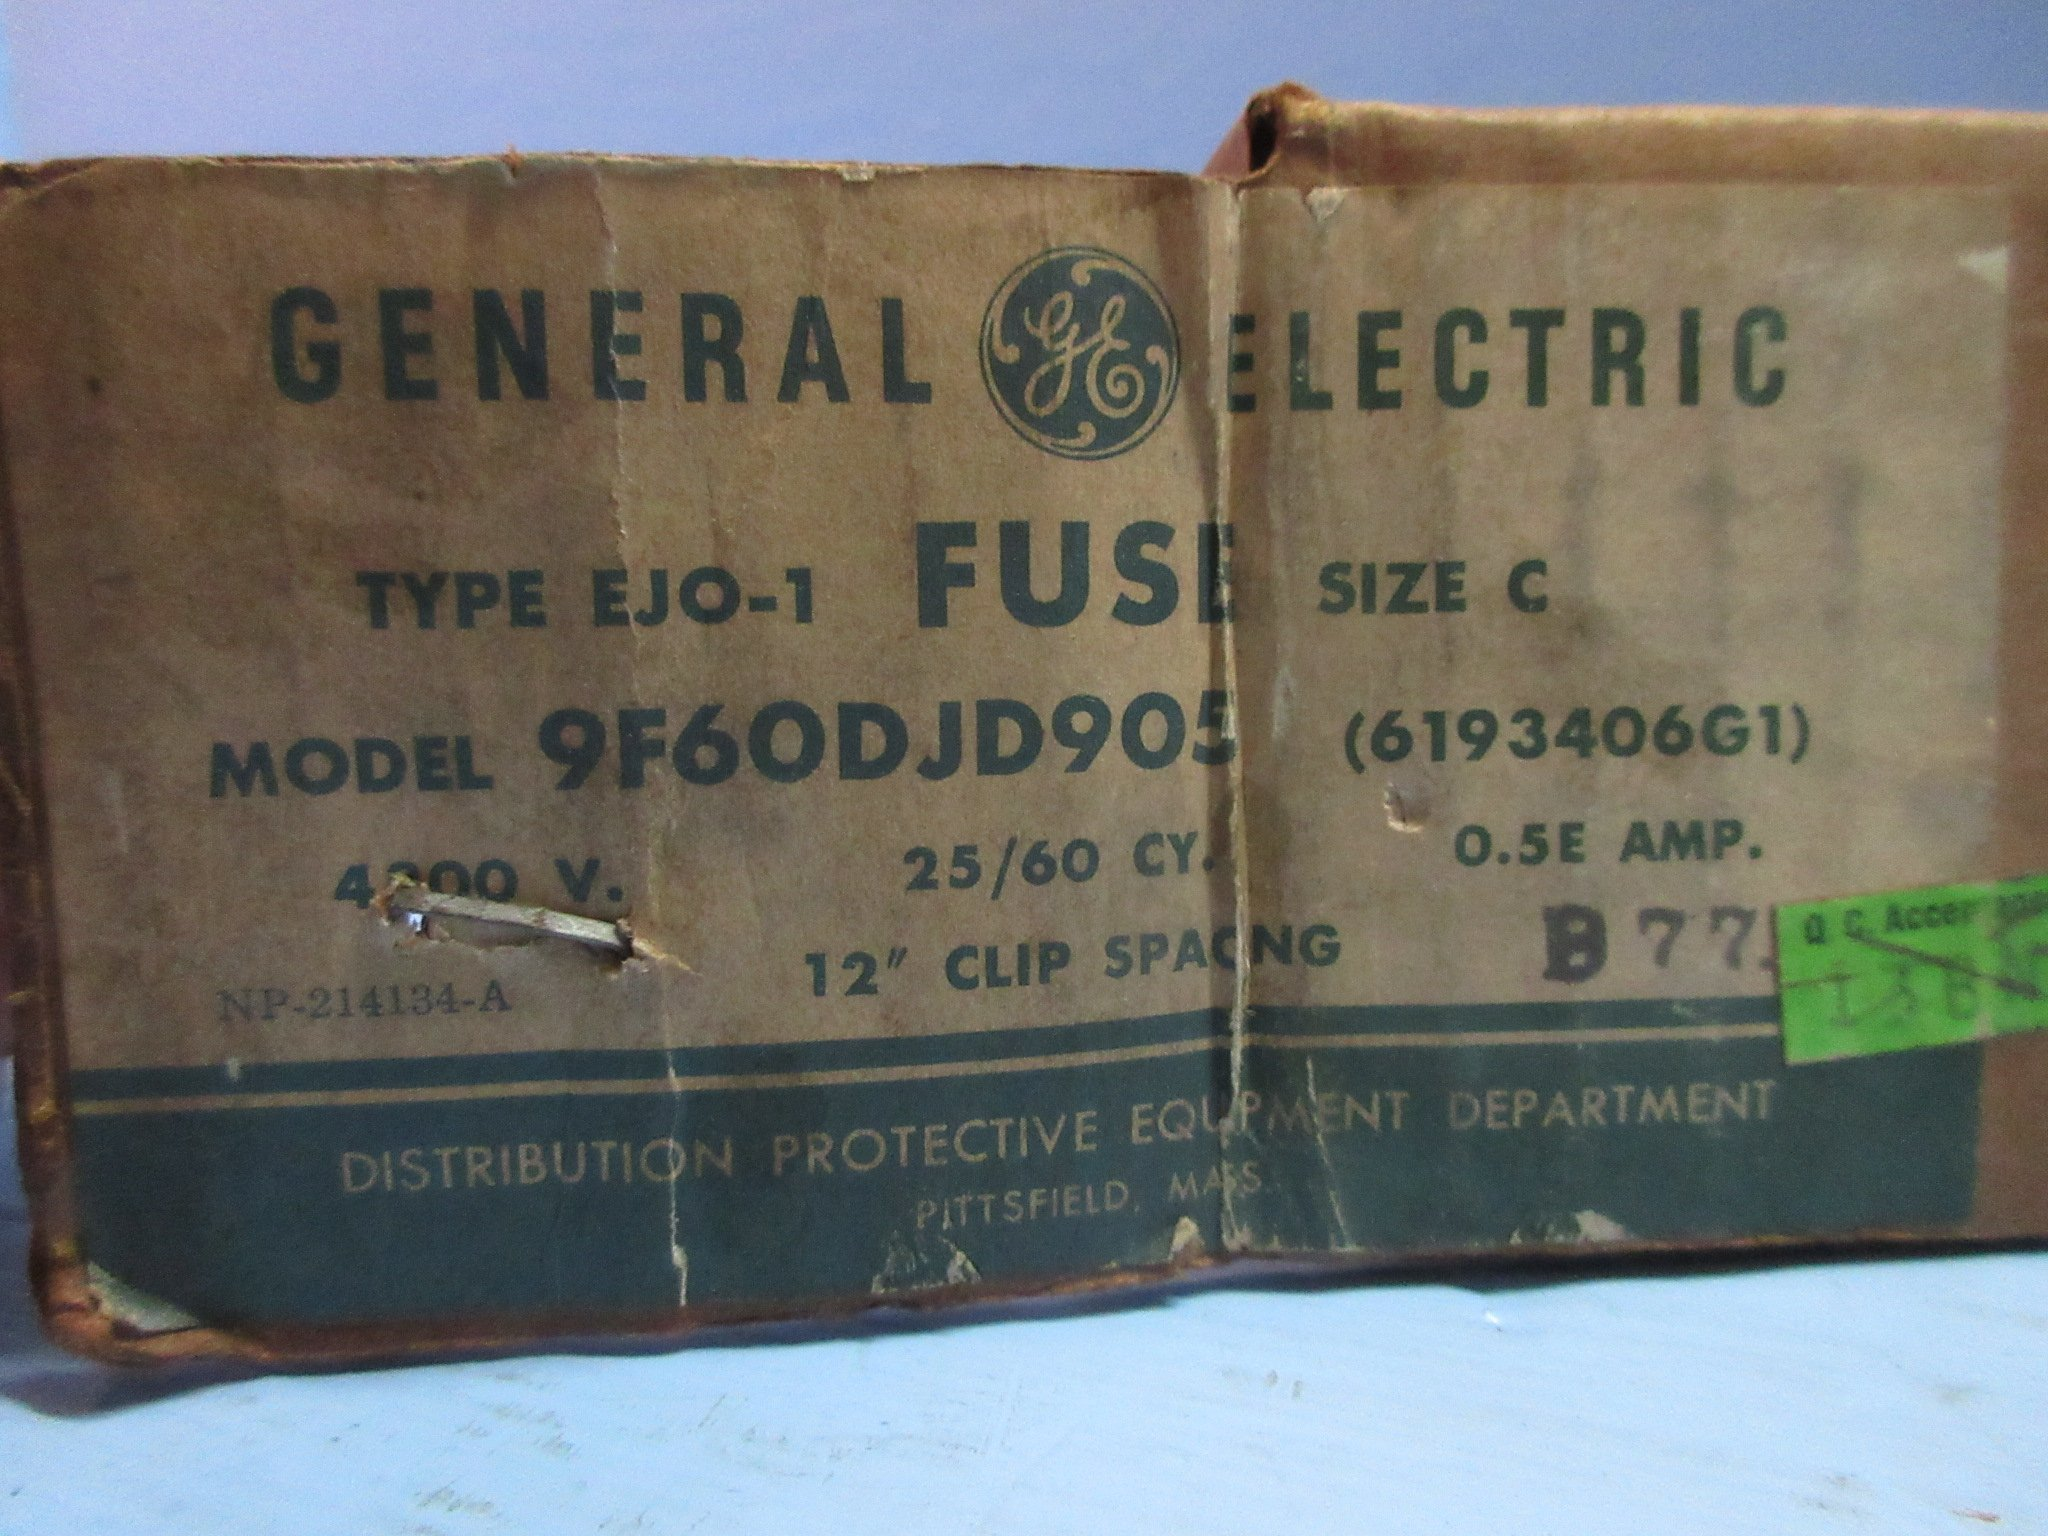 New General Electric 9F60DJD905 Type EJO-1 Fuse 0.5E Amp 4800V Size C GE NIB by GE (Image #2)